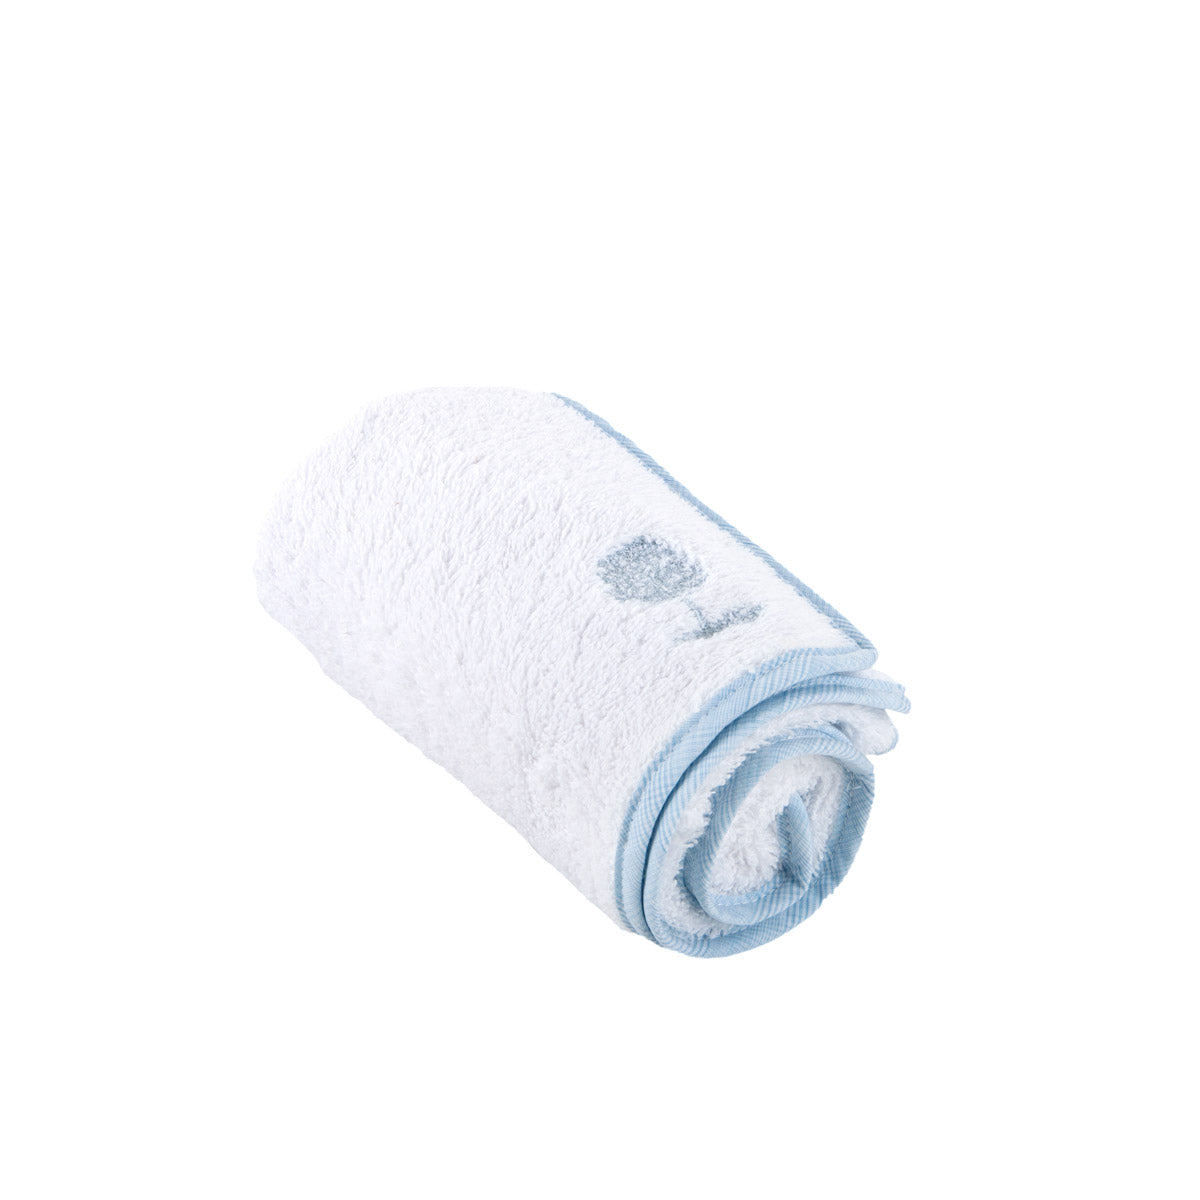 Theophile & Patachou Towel for Changing Mat - Sweet Blue / White